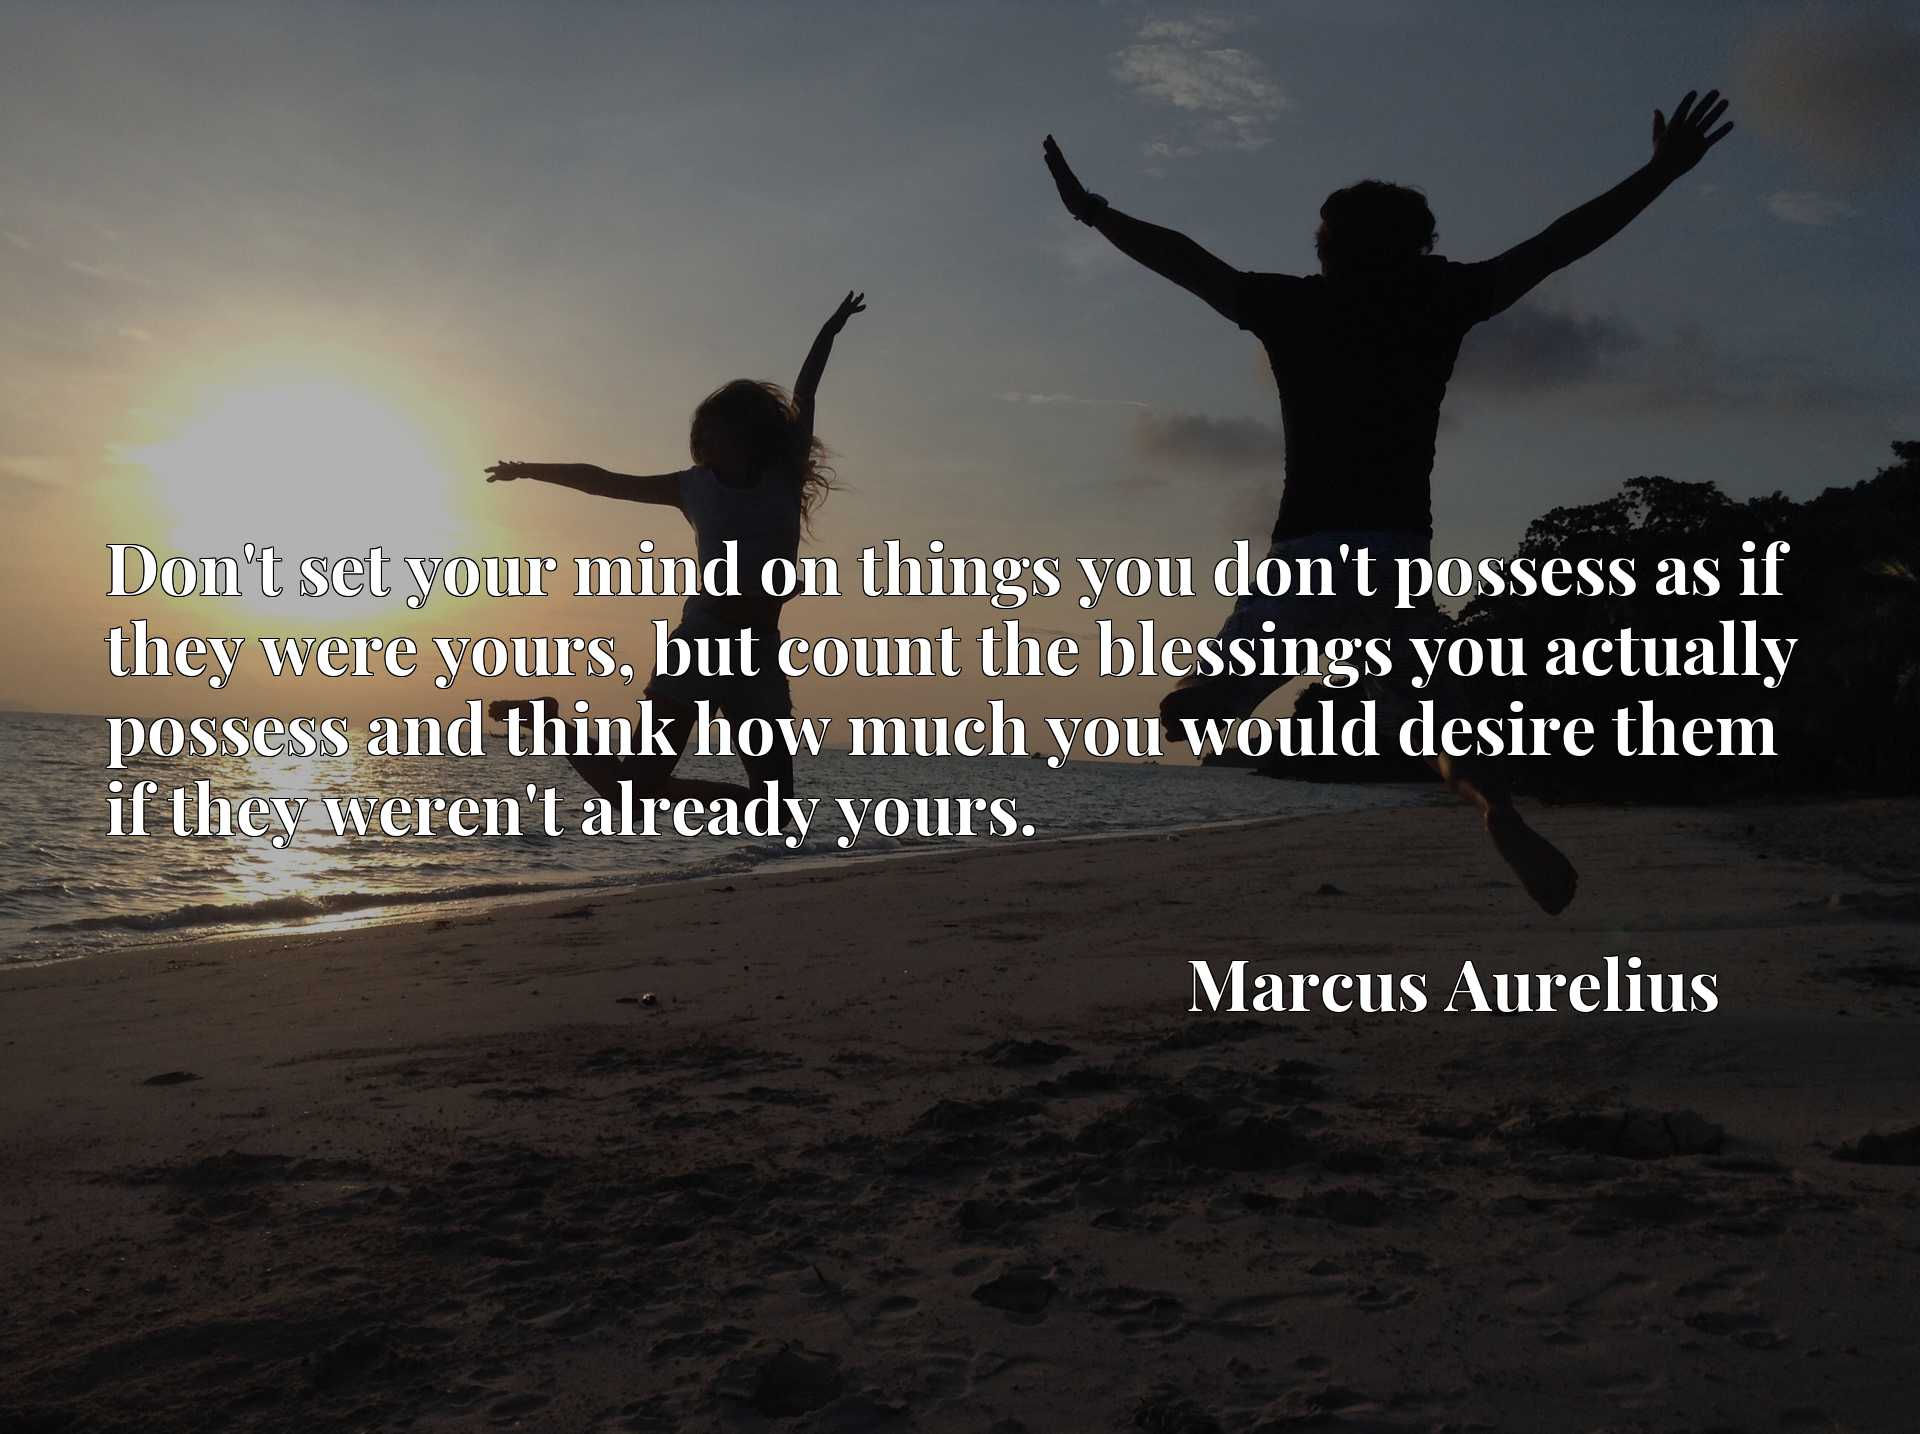 Quote Picture :Don't set your mind on things you don't possess as if they were yours, but count the blessings you actually possess and think how much you would desire them if they weren't already yours.